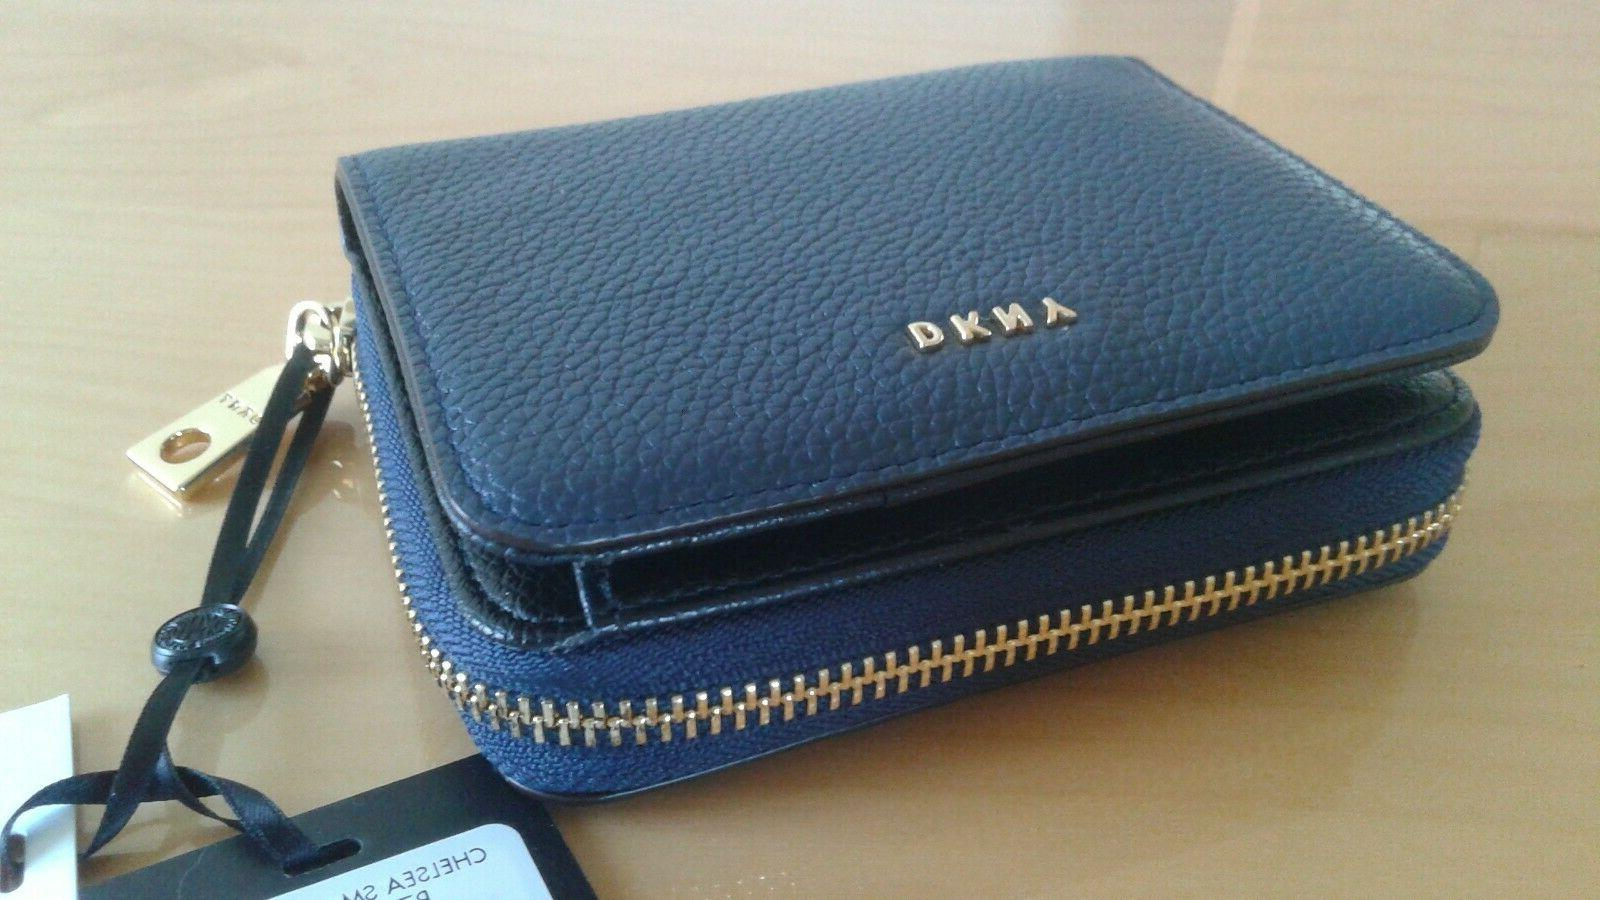 nwt dkny chelsea sm caryall wallet leather